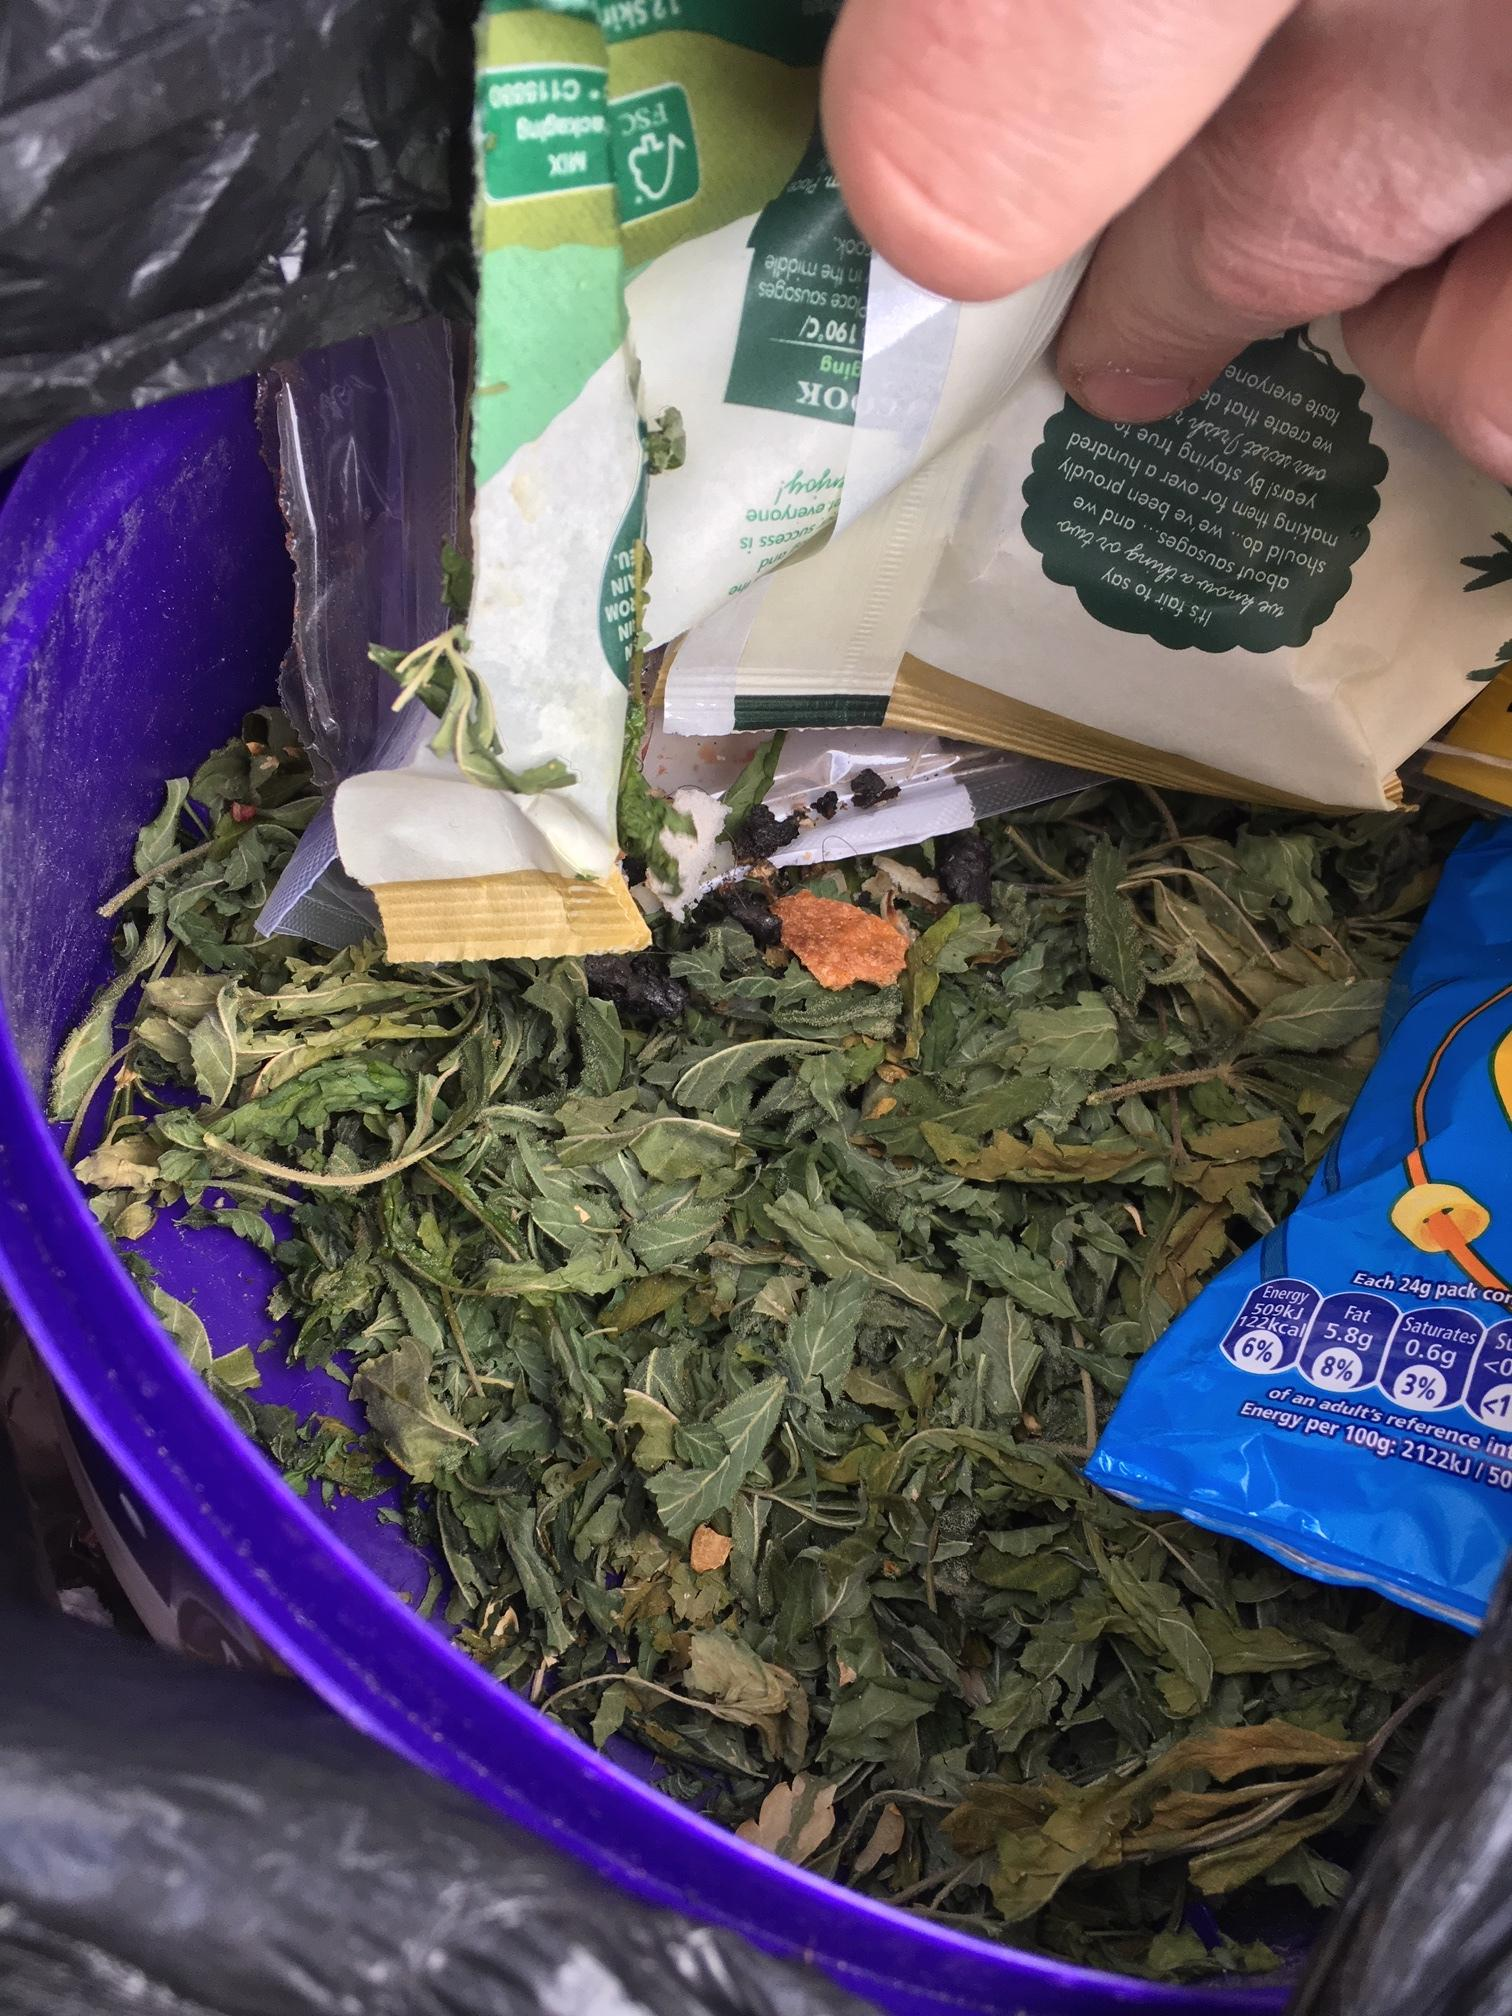 Leaves that looked and smelled like cannabis were found dumped in a bin liner on Prospect Hill